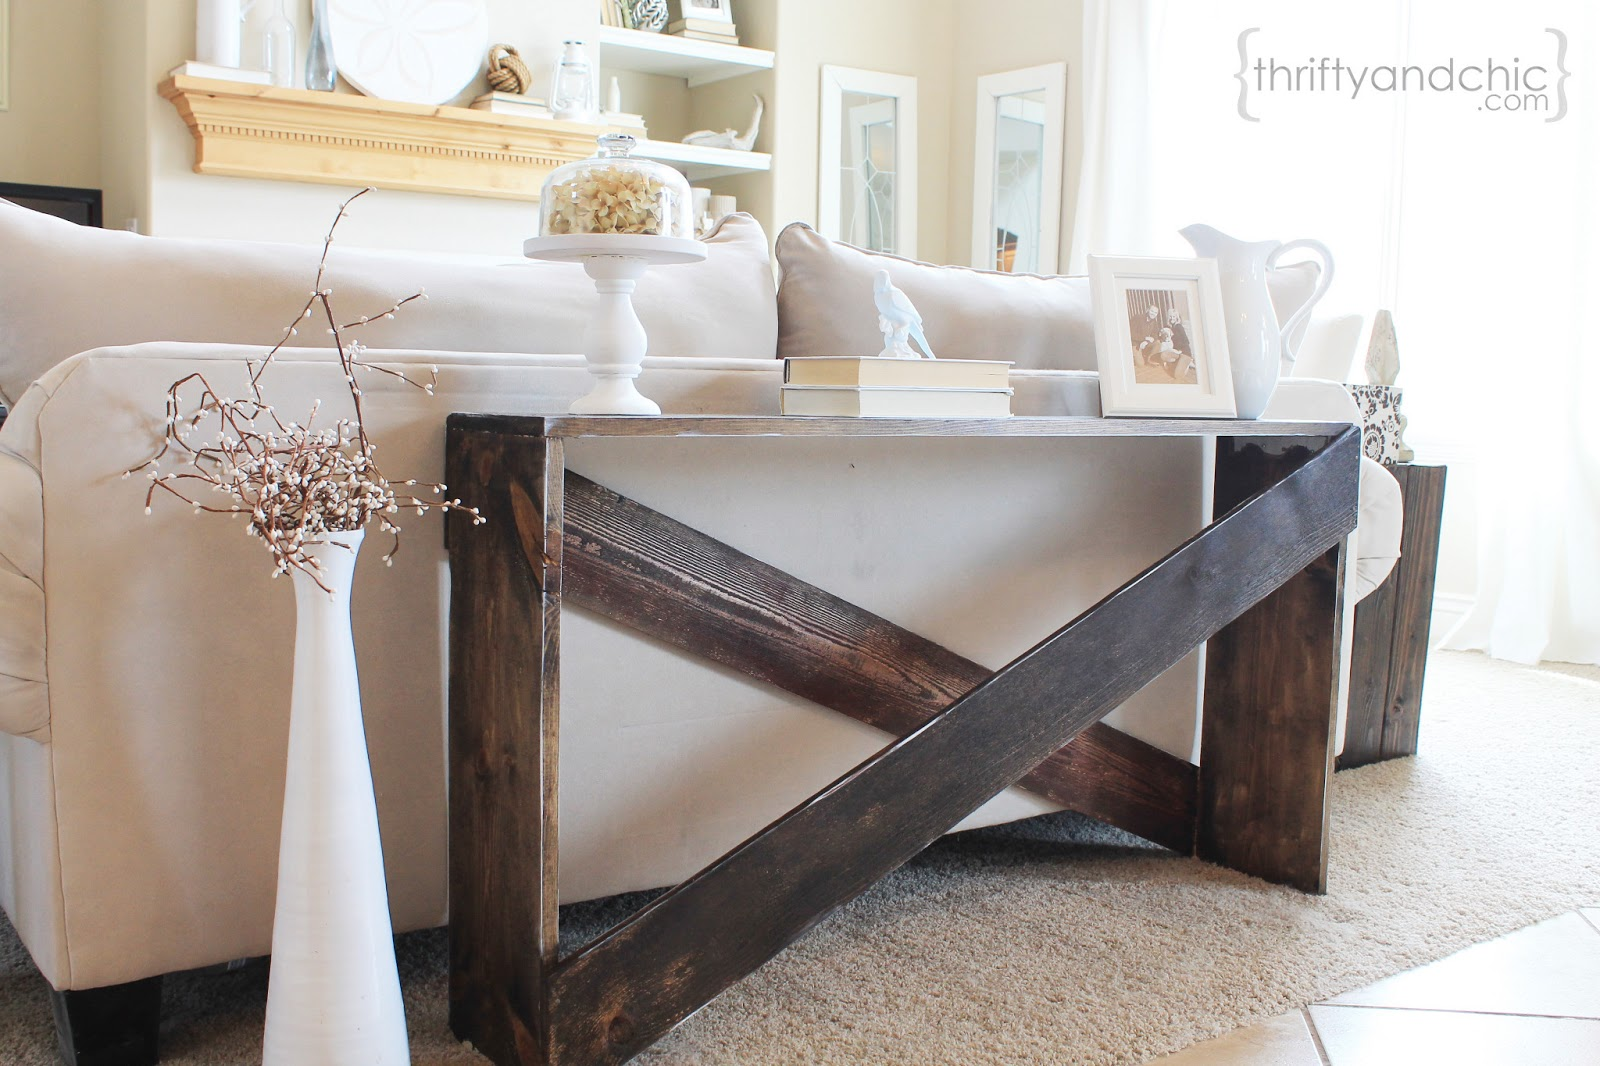 Thrifty and chic diy projects and home decor for Sofa side table designs